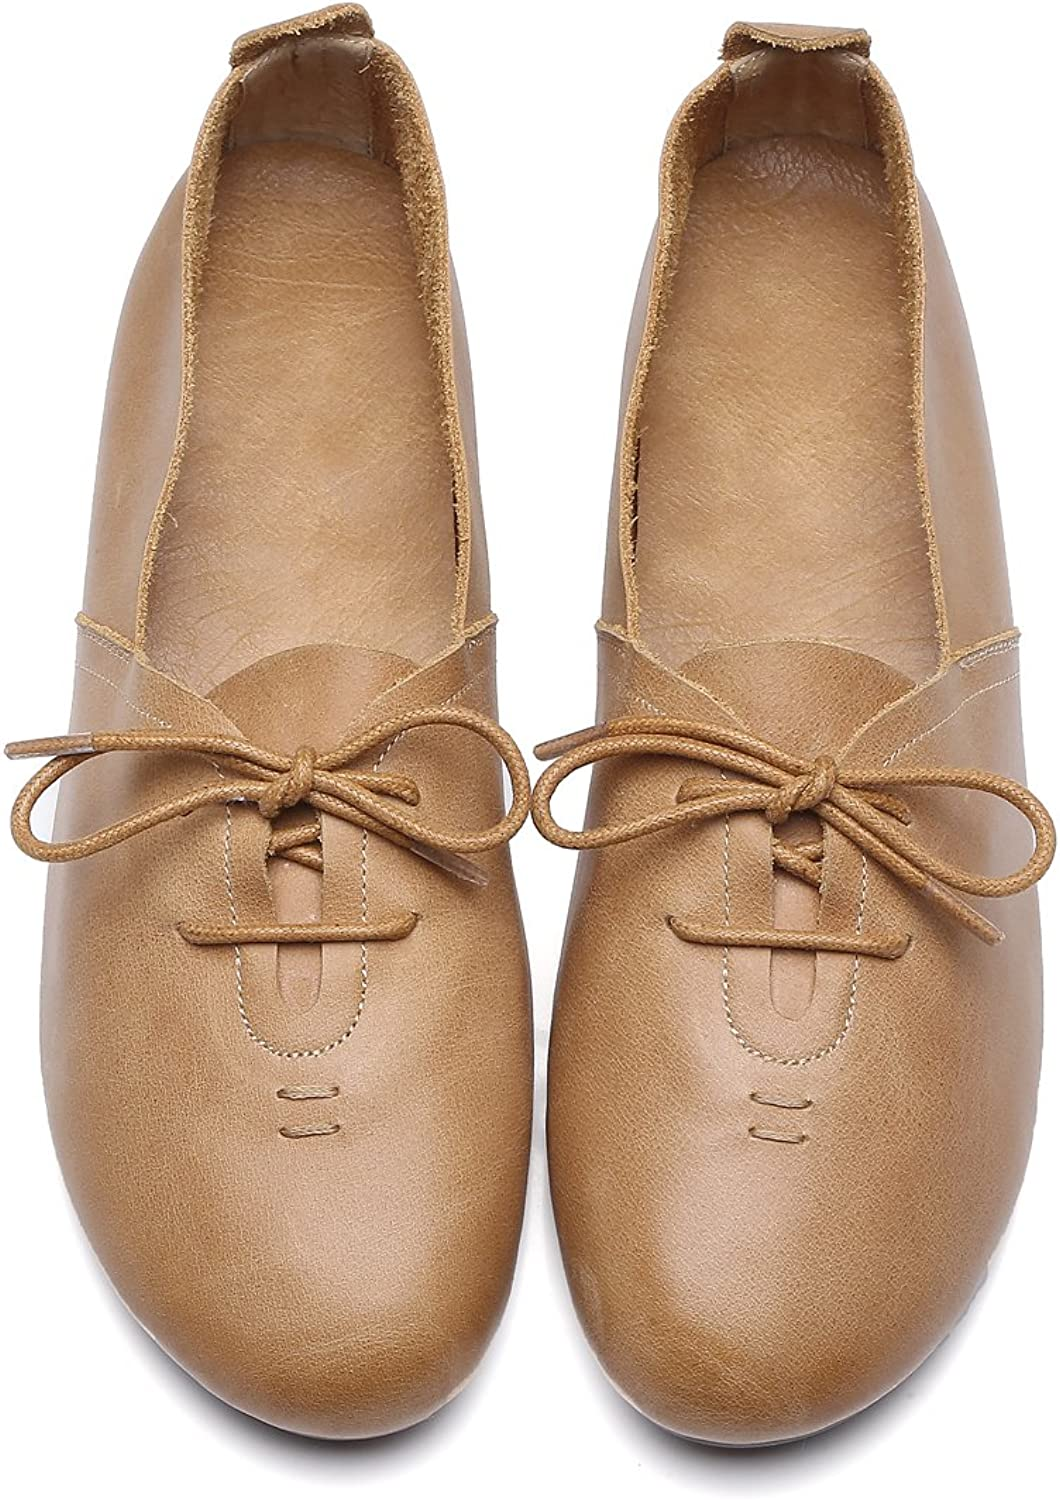 Women's Beautiful Sweet Genuine Leather Flats shoes Comfortable Soft Simple Design Round Toe shoes Women